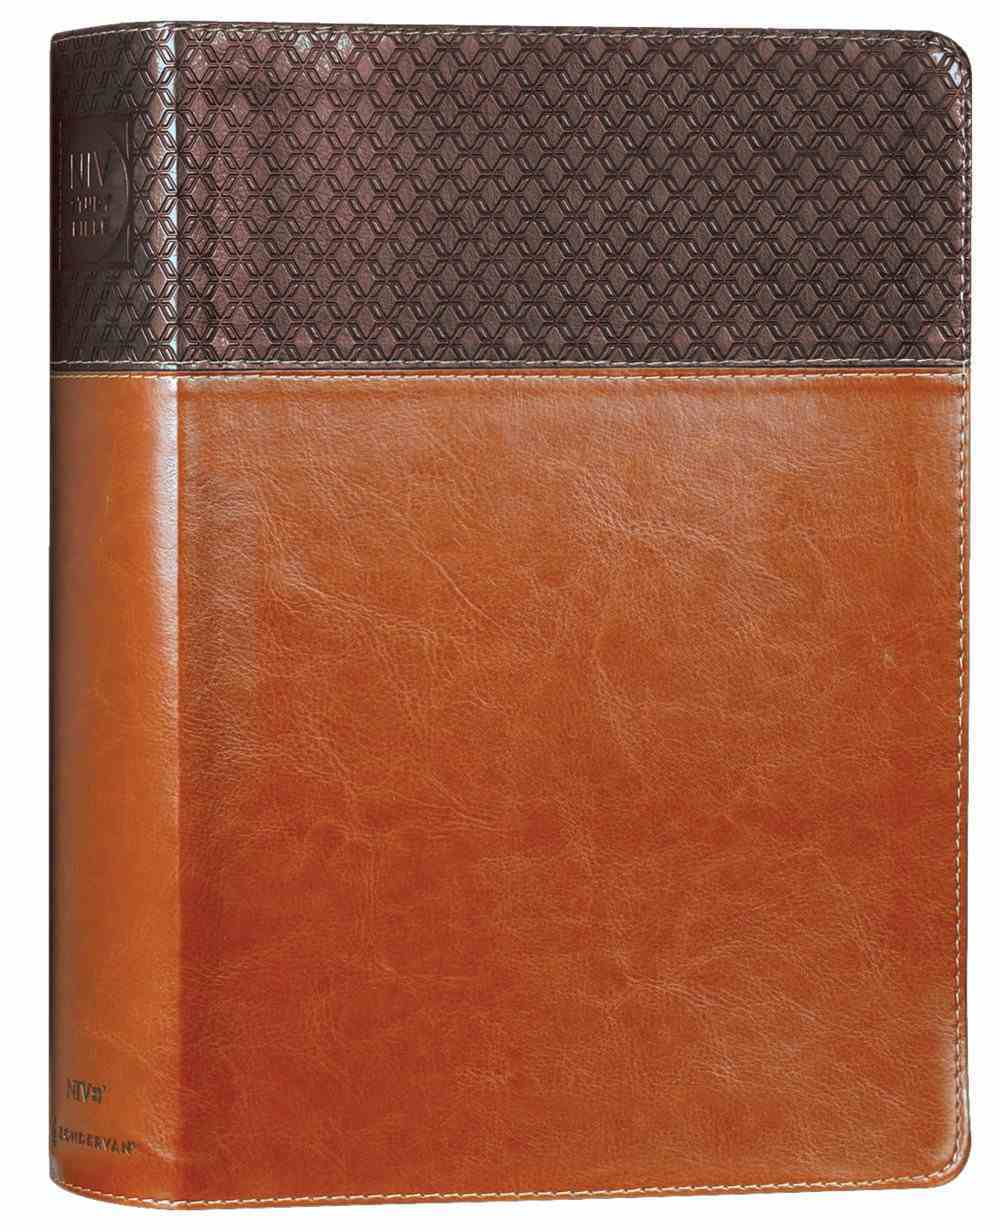 NIV Study Bible Large Print Brown (Red Letter Edition) Fully Revised Edition (2020) Premium Imitation Leather